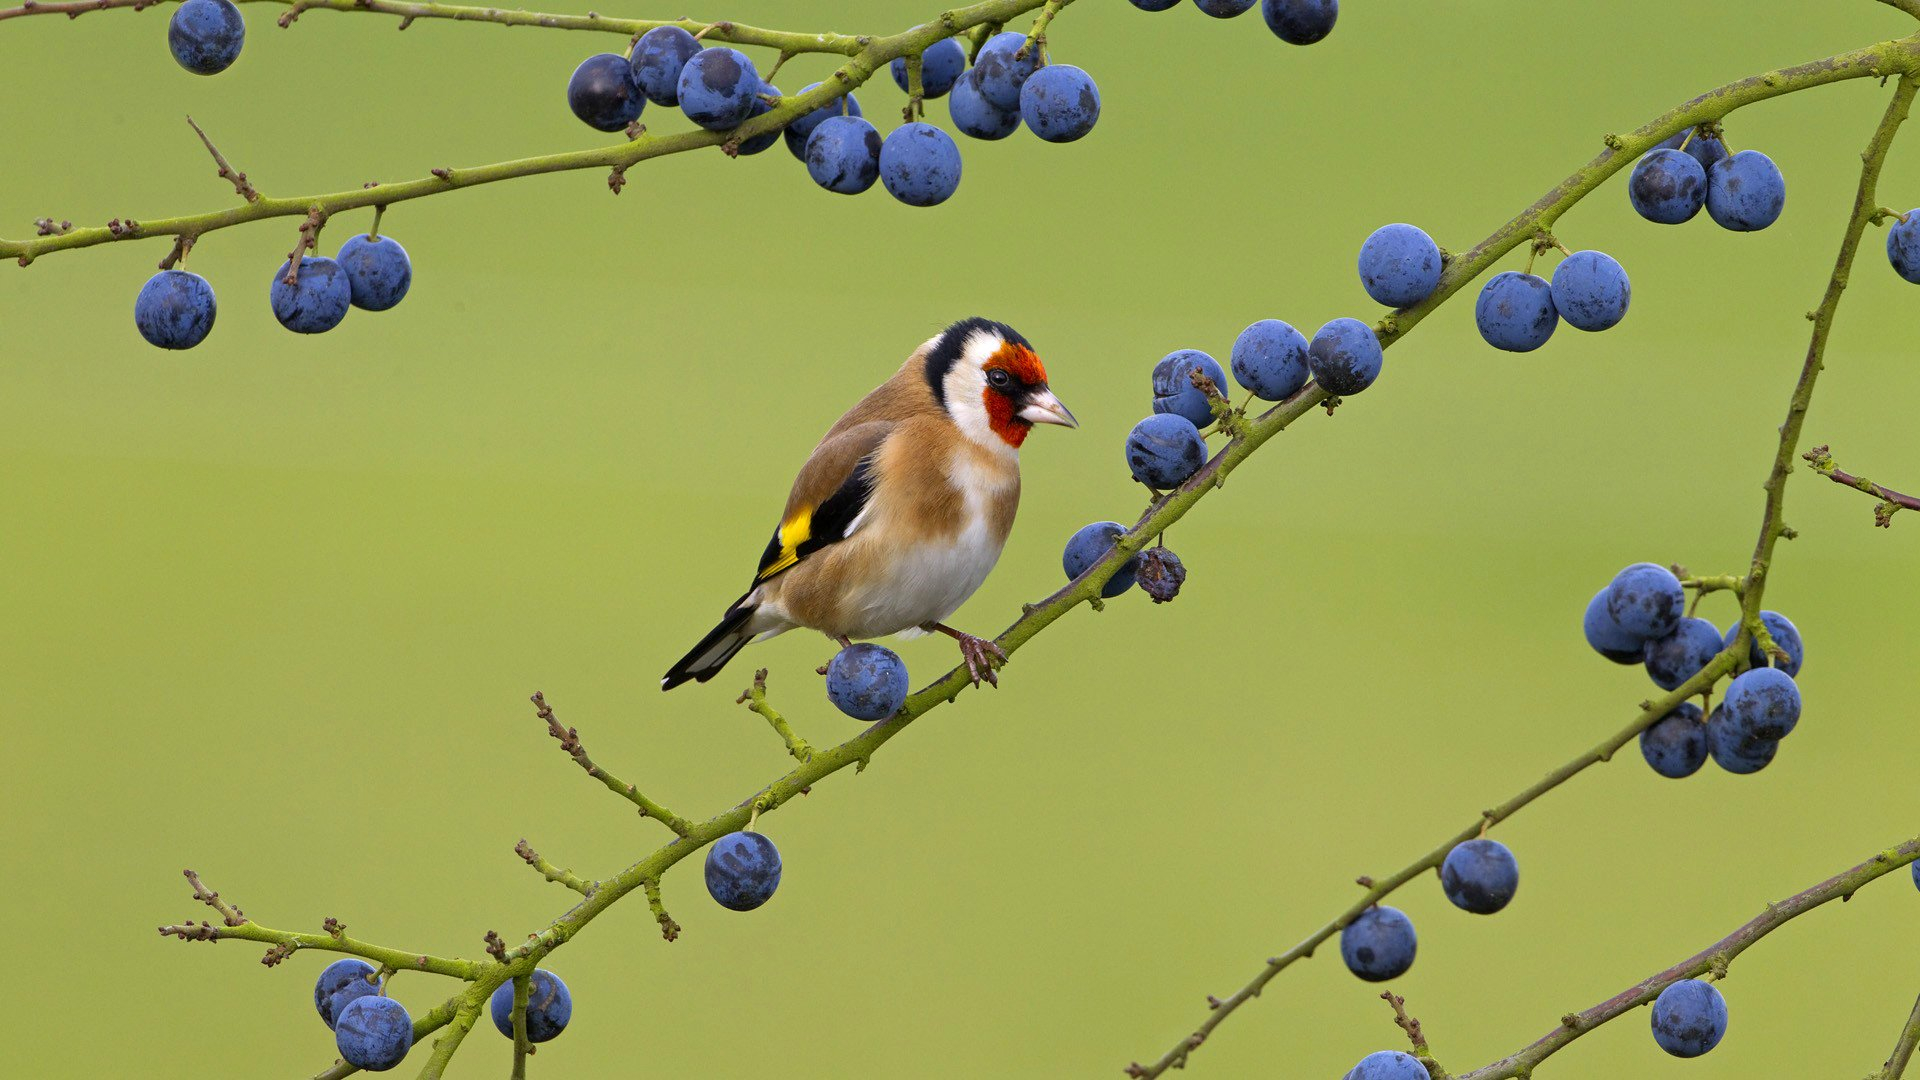 Goldfinch and Berries wallpaper